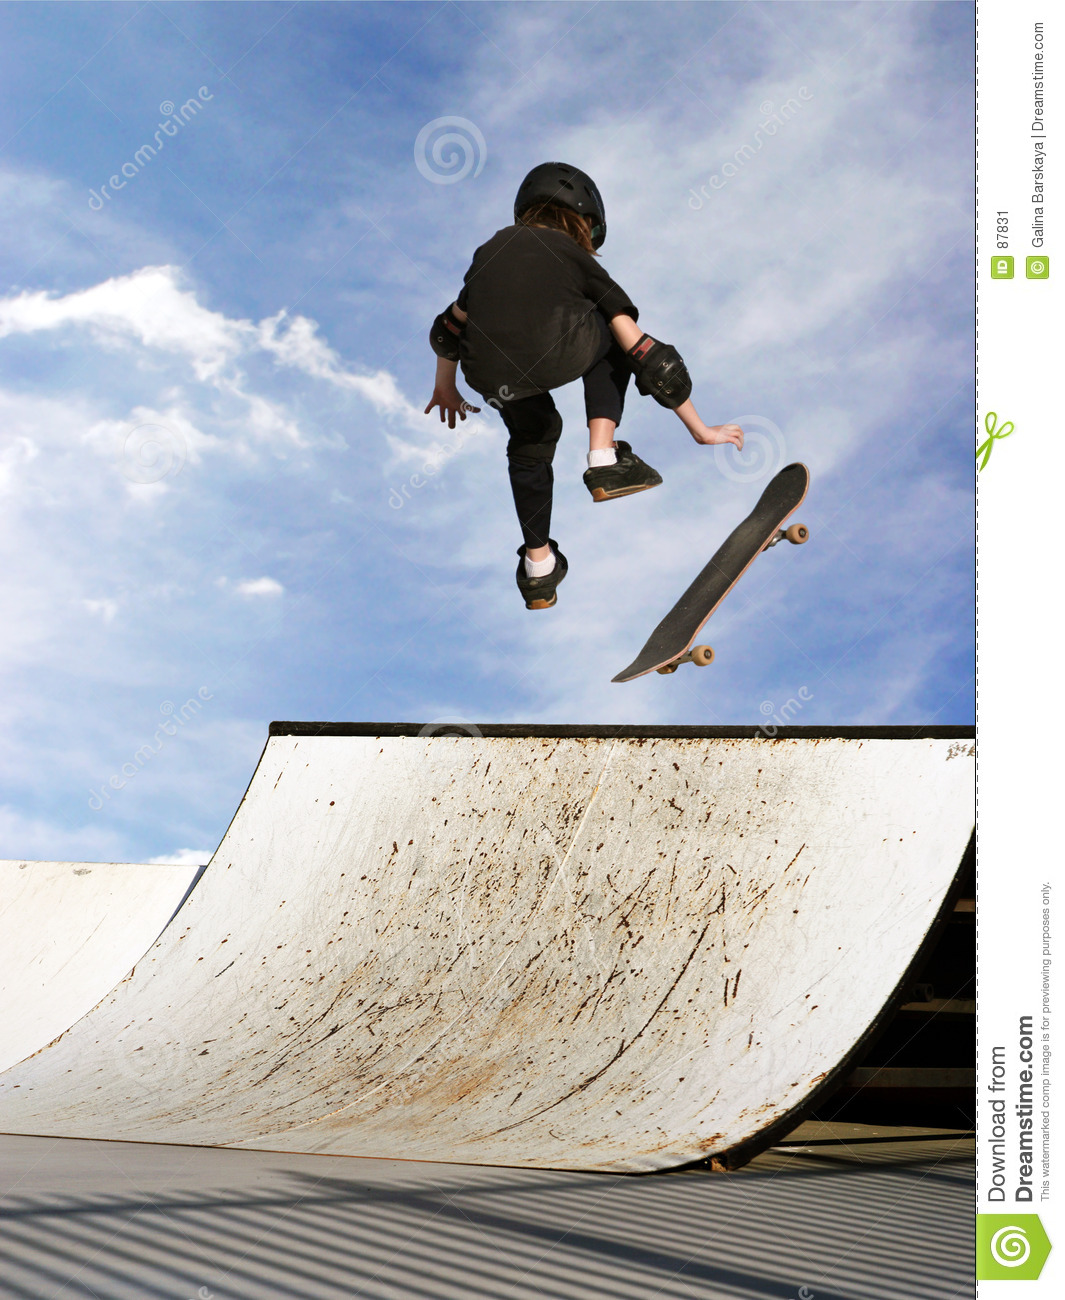 girl skateboarding stock image image of expression